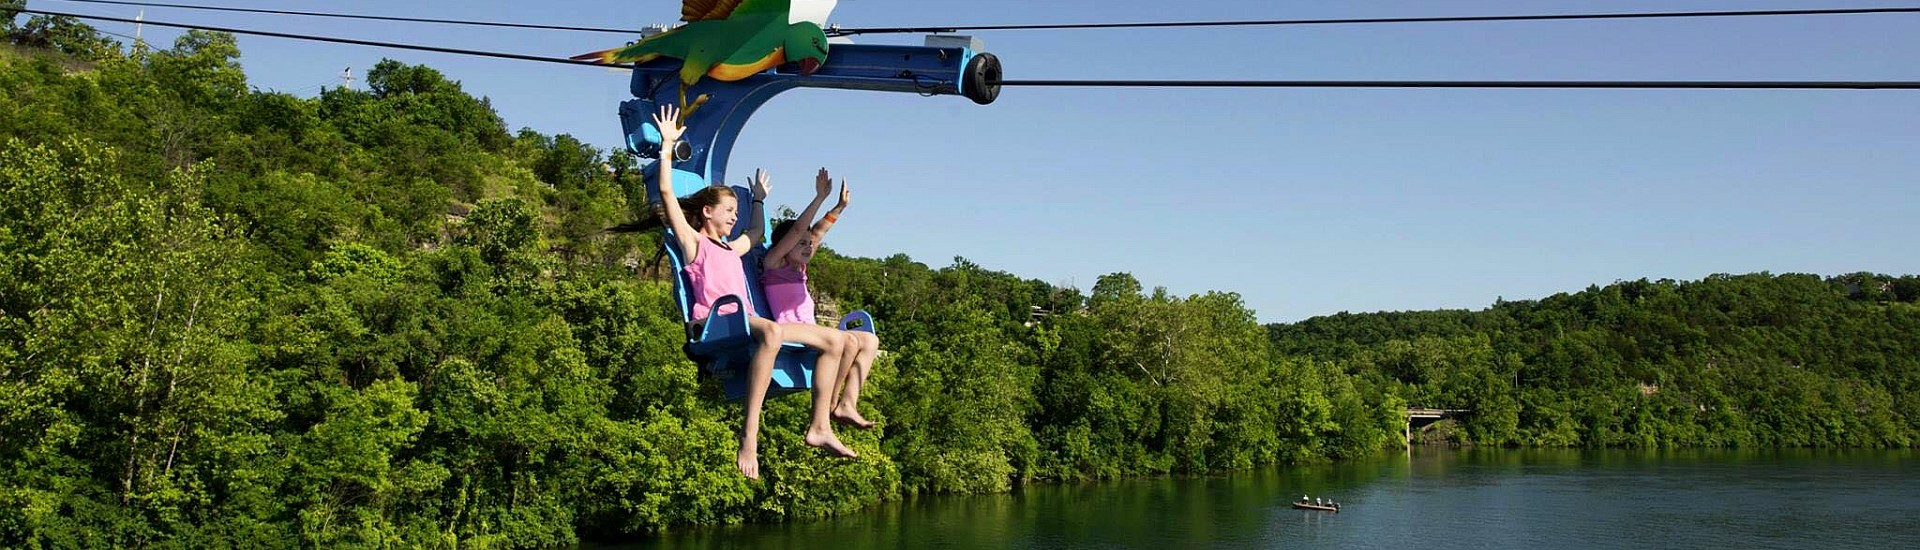 Fun Attractions Things To Do At Branson Landing Branson - Branson tourist map